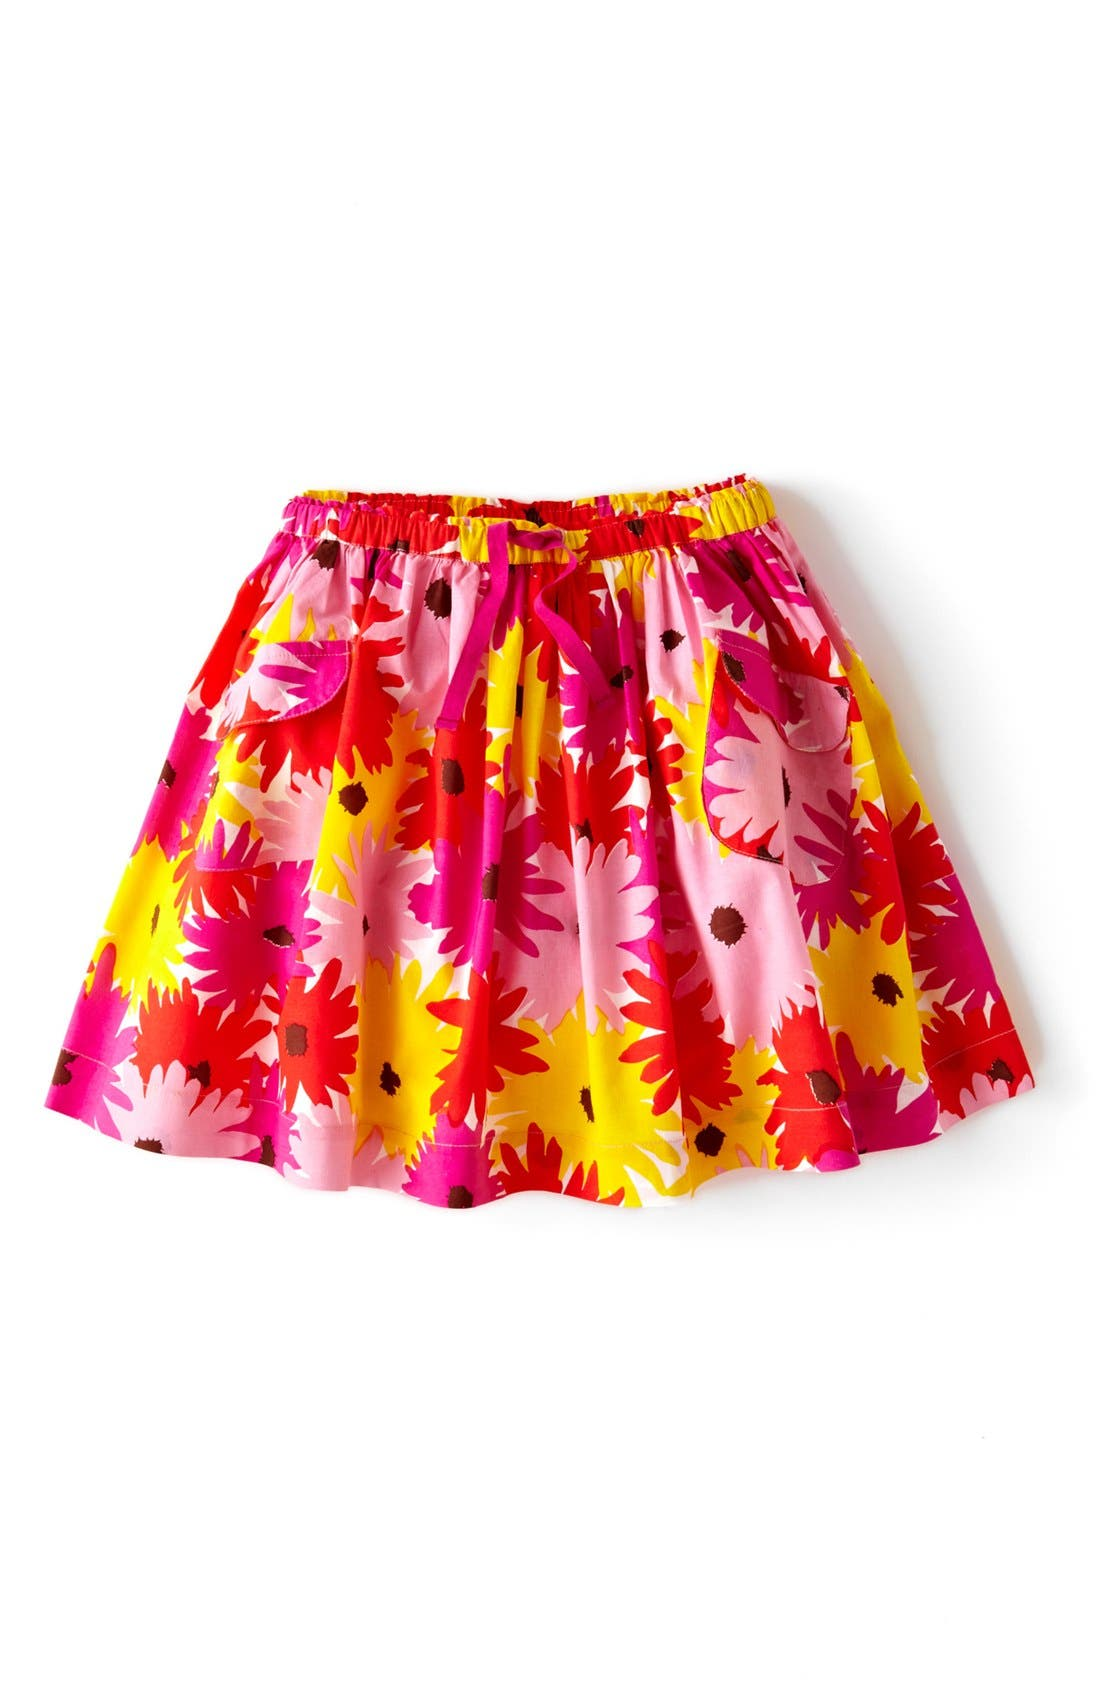 Main Image - Mini Boden 'Fun' Print Circle Skirt (Toddler Girls, Little Girls & Big Girls)